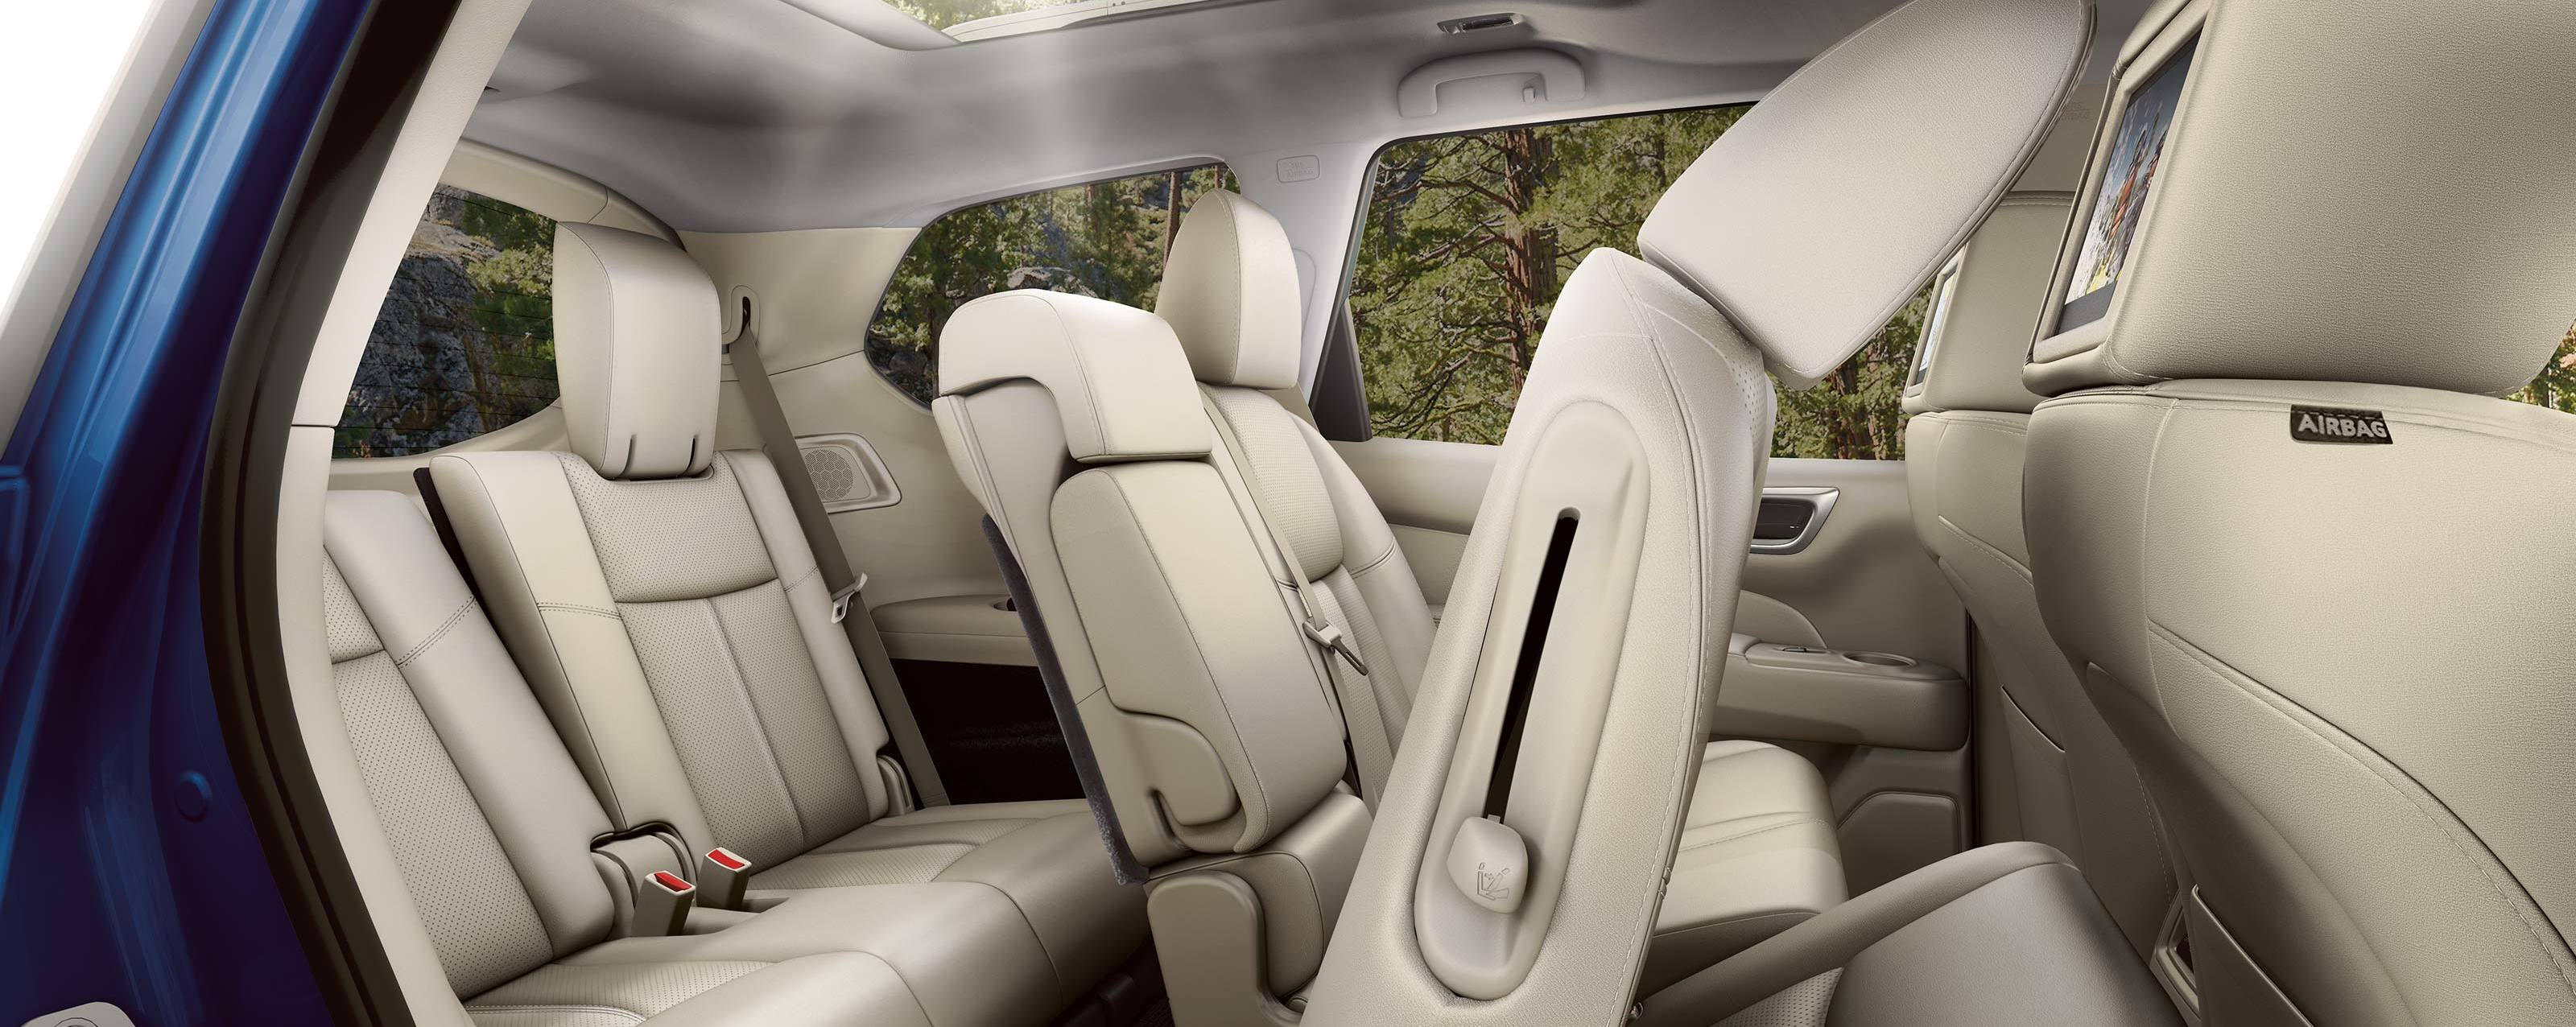 2020 Nissan Pathfinder EZ FLEX® Seating System